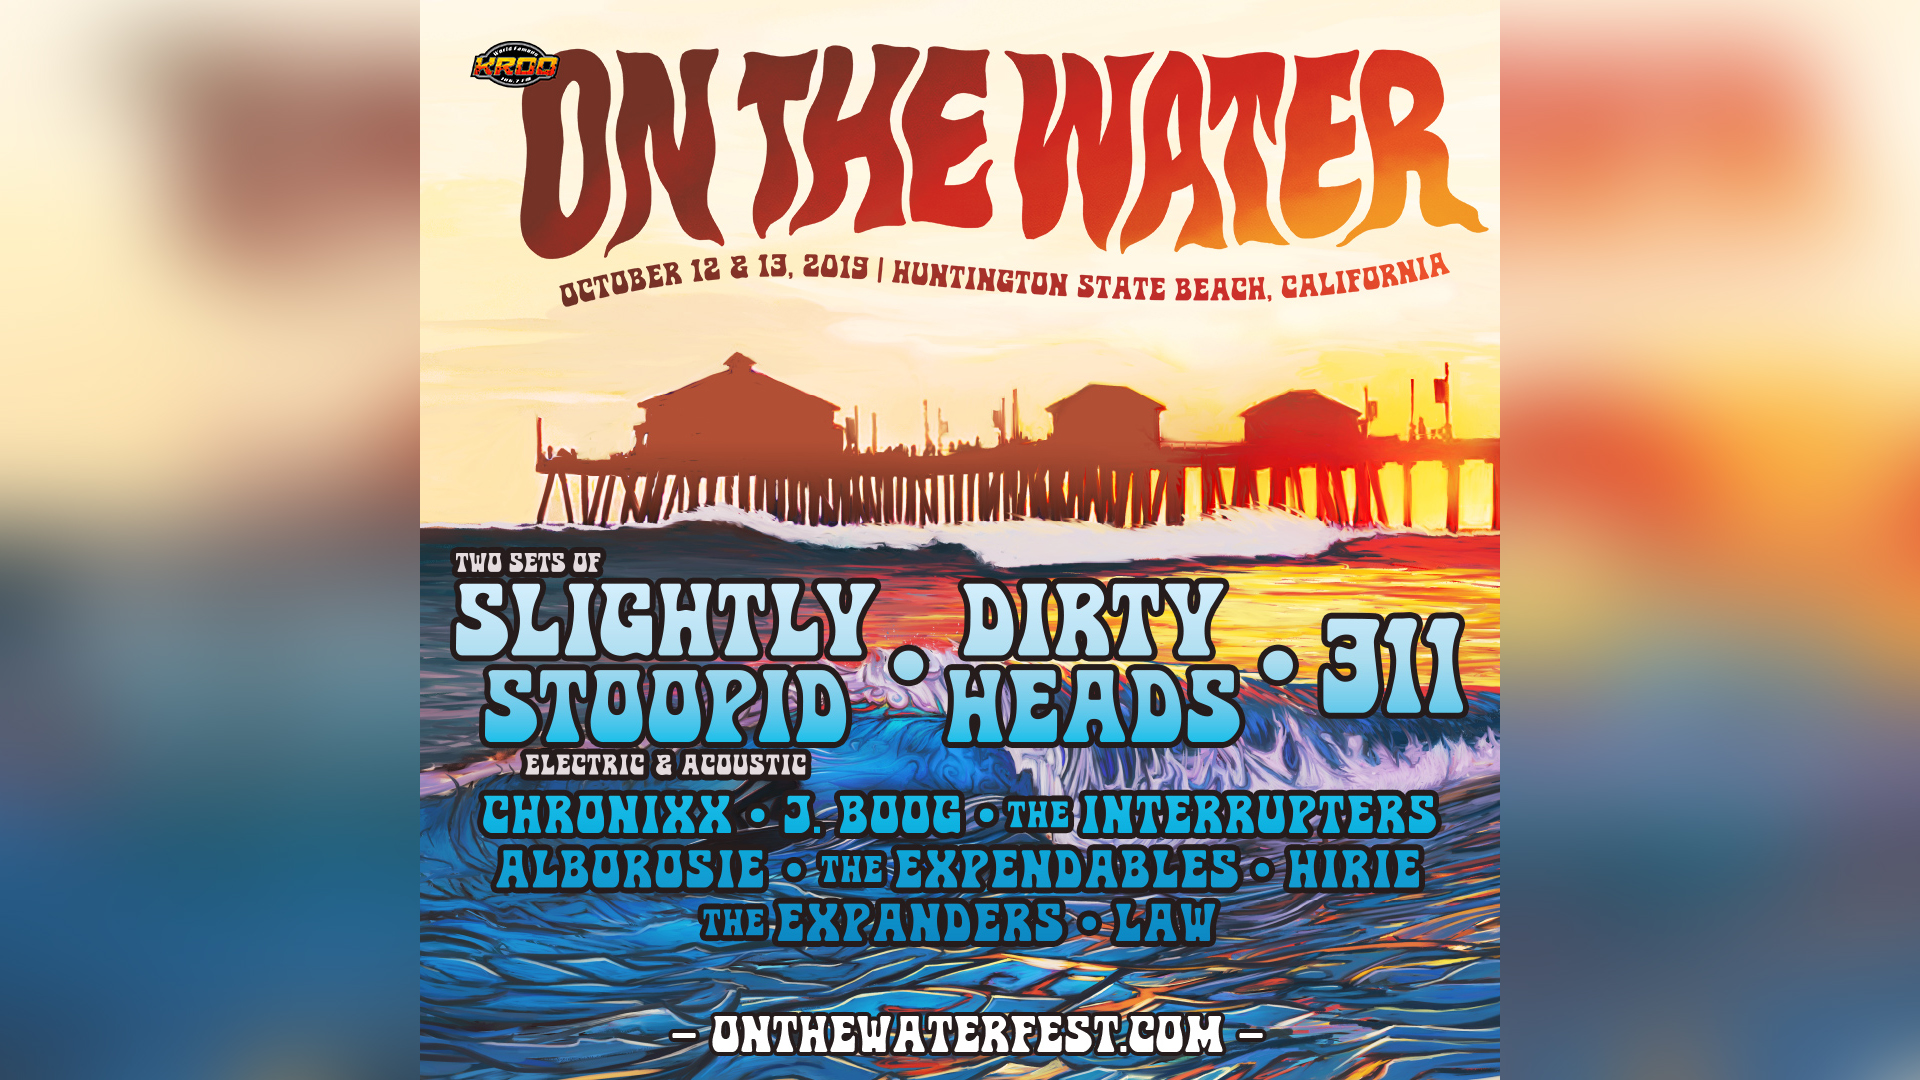 Poster courtesy of On the Water Festival.